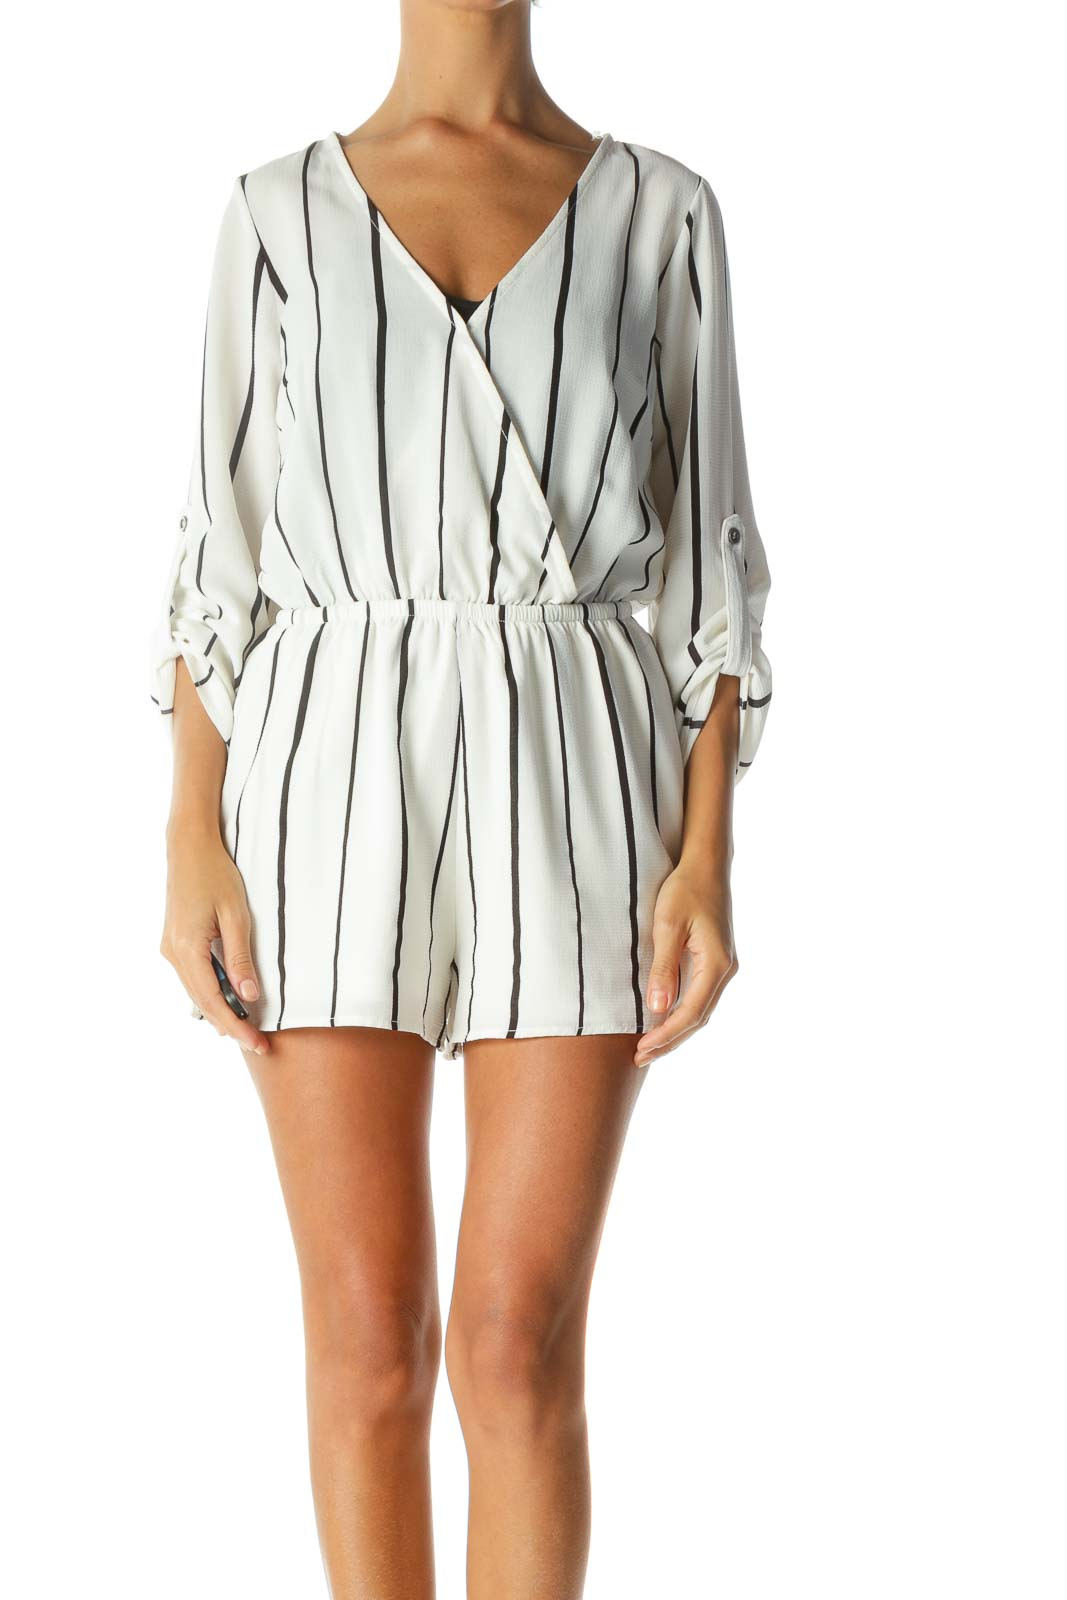 White Black Striped V-Neck Roll-Up Sleeves Romper Front